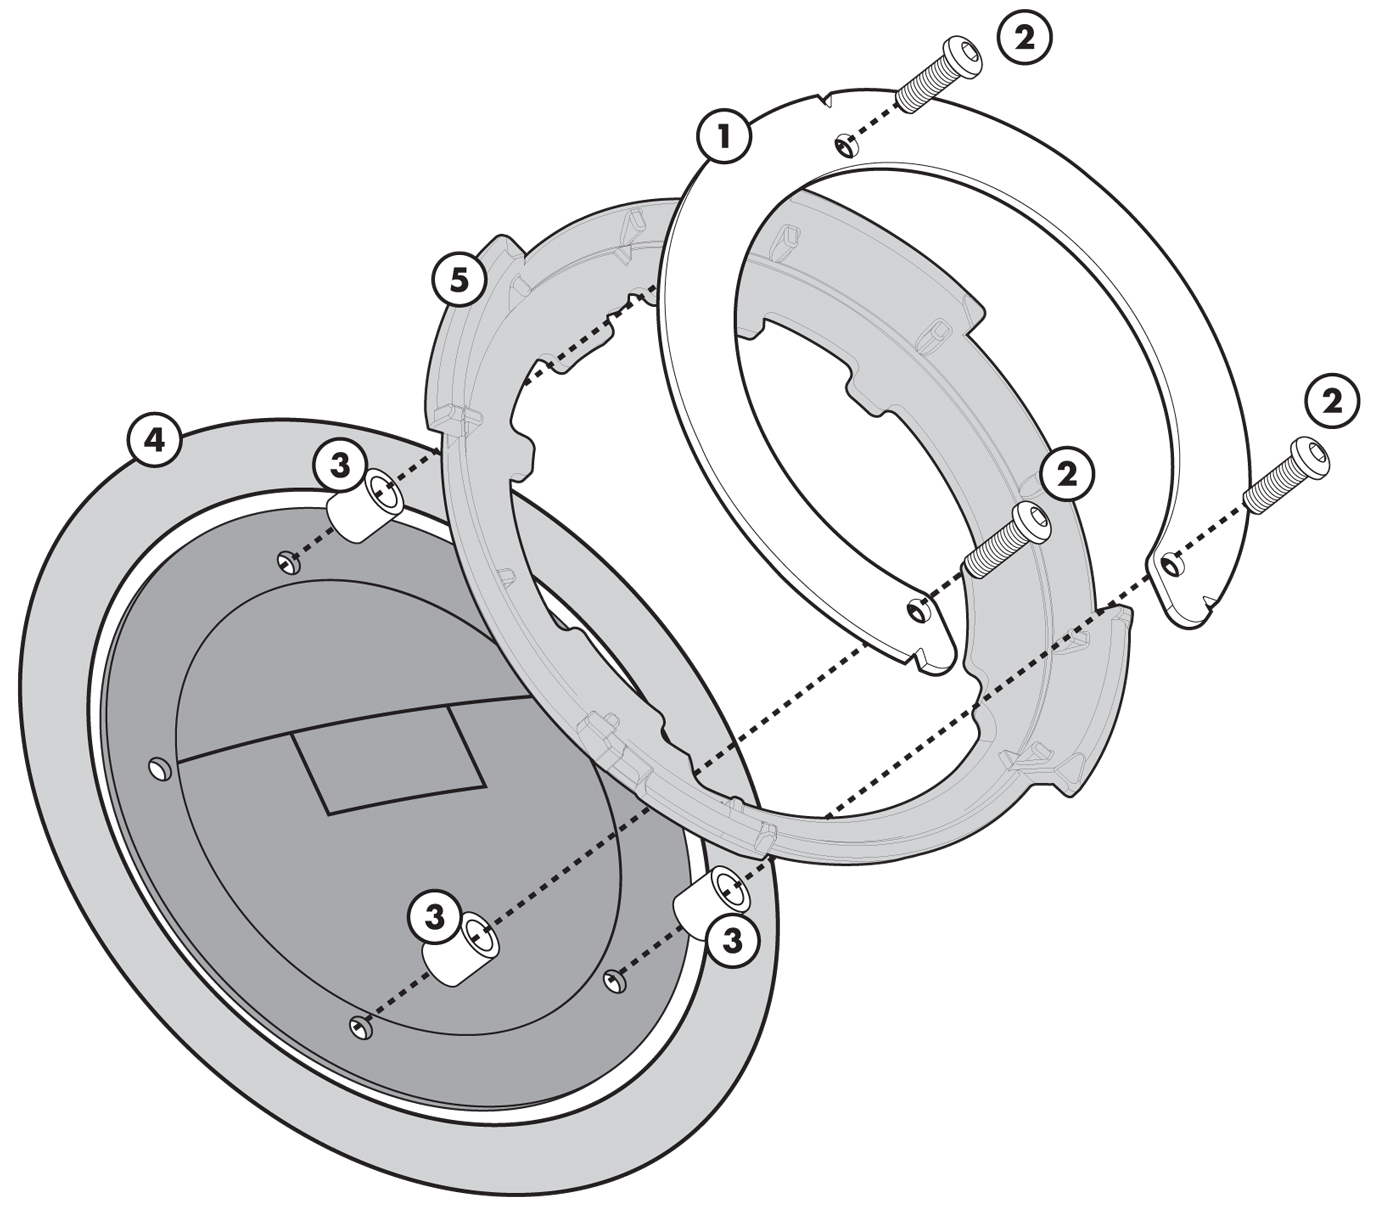 Givi Tank Bag Flange Bf08 2000 Ducati St2 Wiring Diagram Tanklock Fuel For Monster S2r S4r S4 Rs 1000 St4 848 1098 1198 821 1200